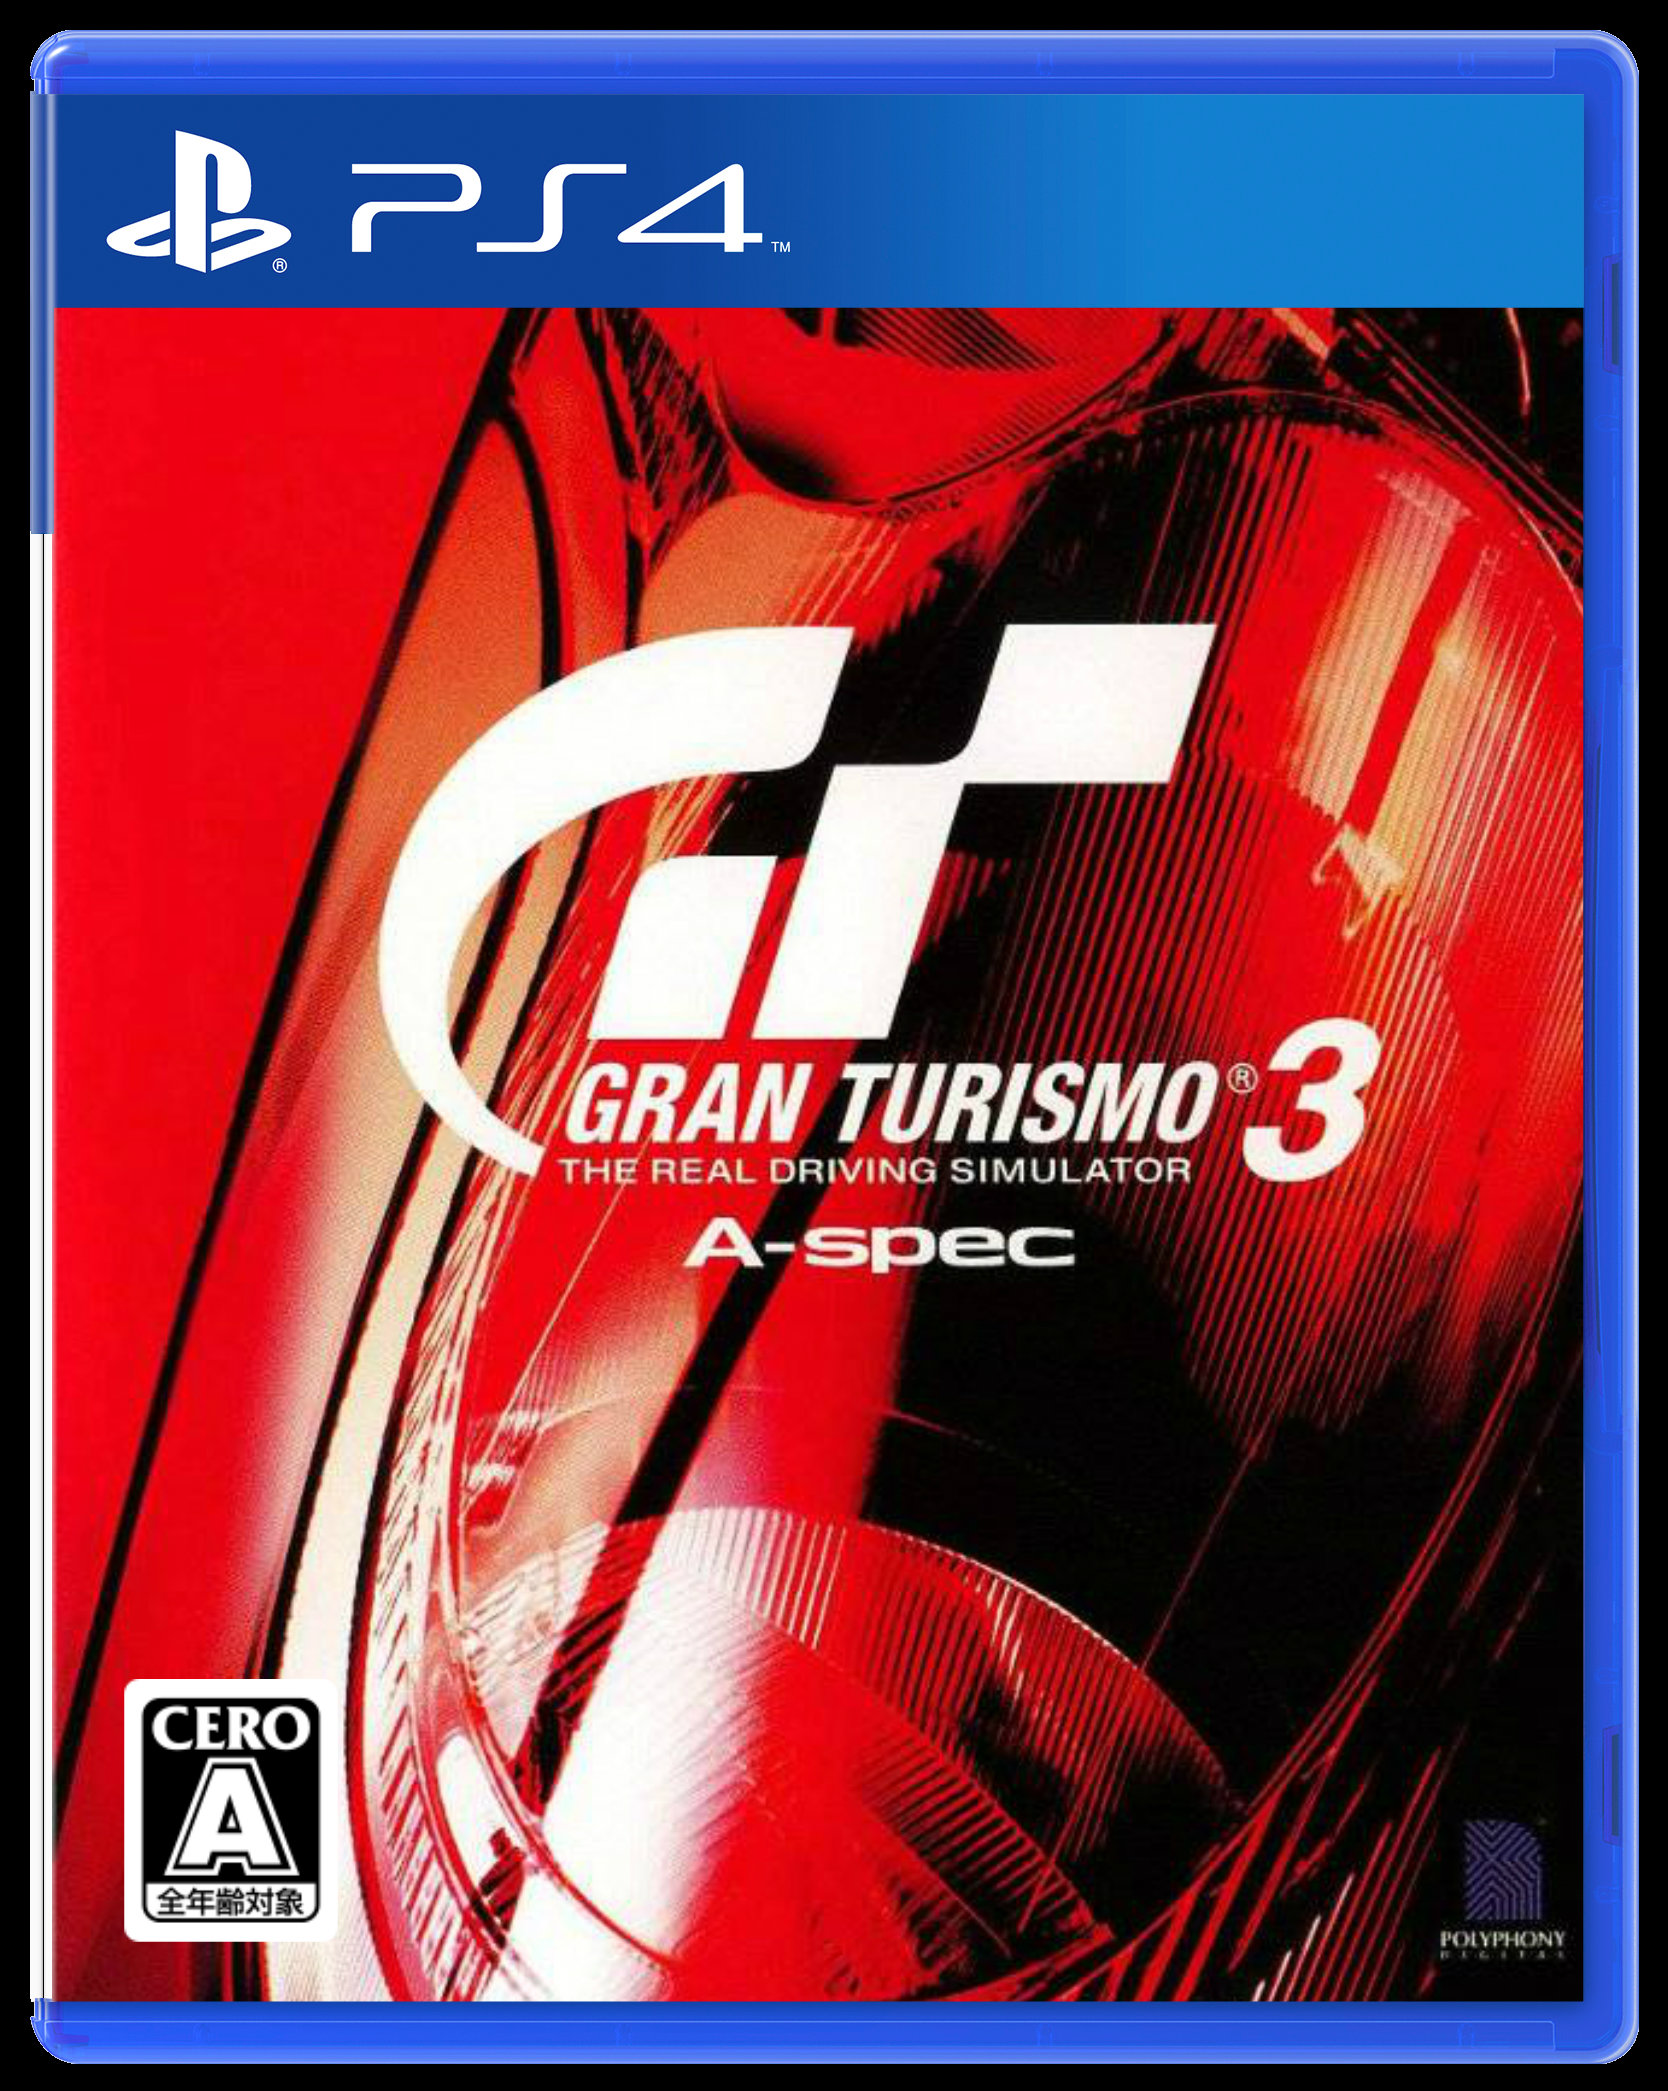 gran turismo 3 ps4 port box art by fabinator6 on deviantart. Black Bedroom Furniture Sets. Home Design Ideas